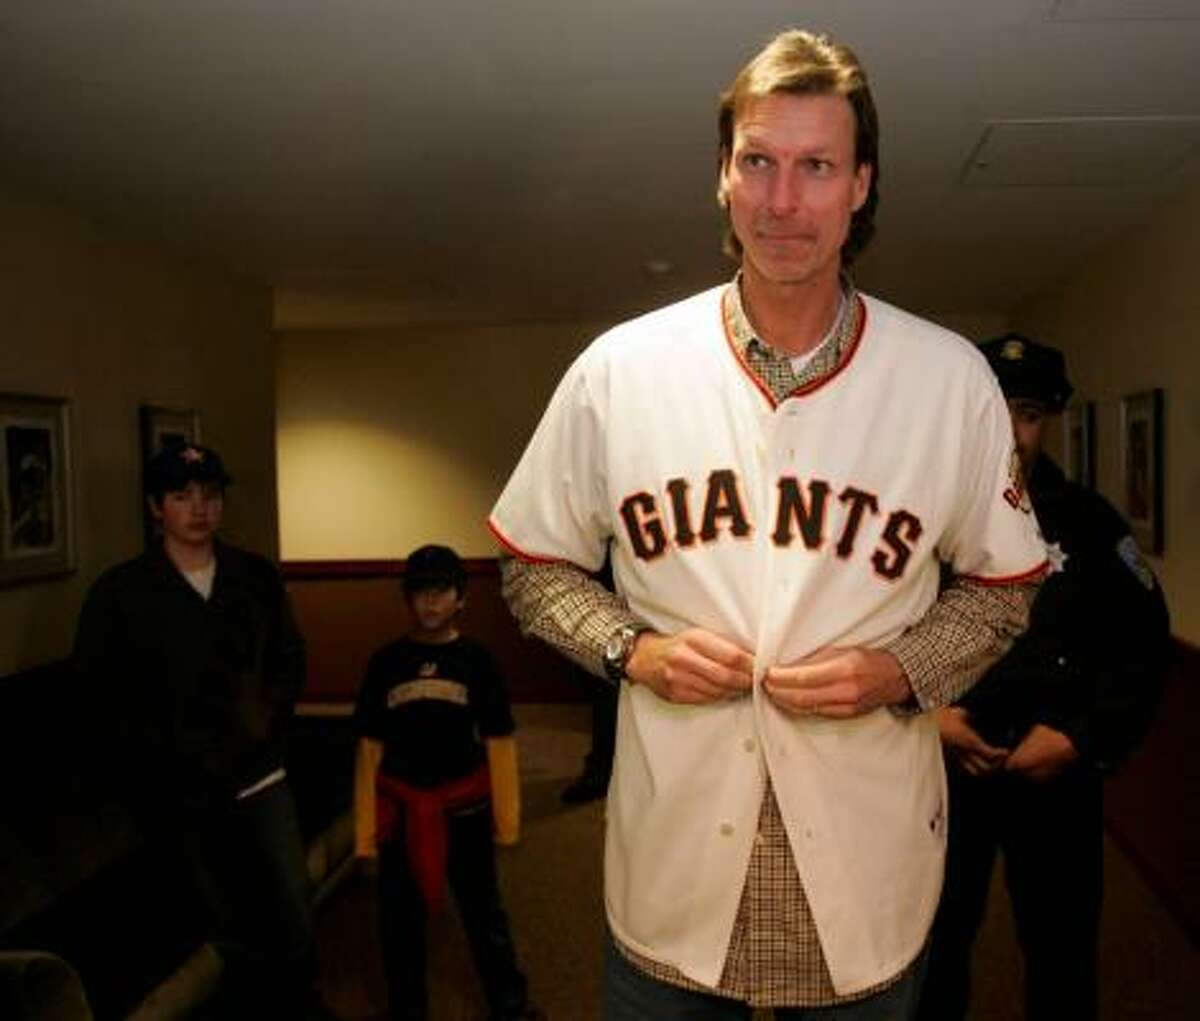 San Francisco Giants (2009) San Francisco Giants pitcher Randy Johnson tries on his new team's jersey for the first time during an open house for fans at AT&T Park in San Francisco.